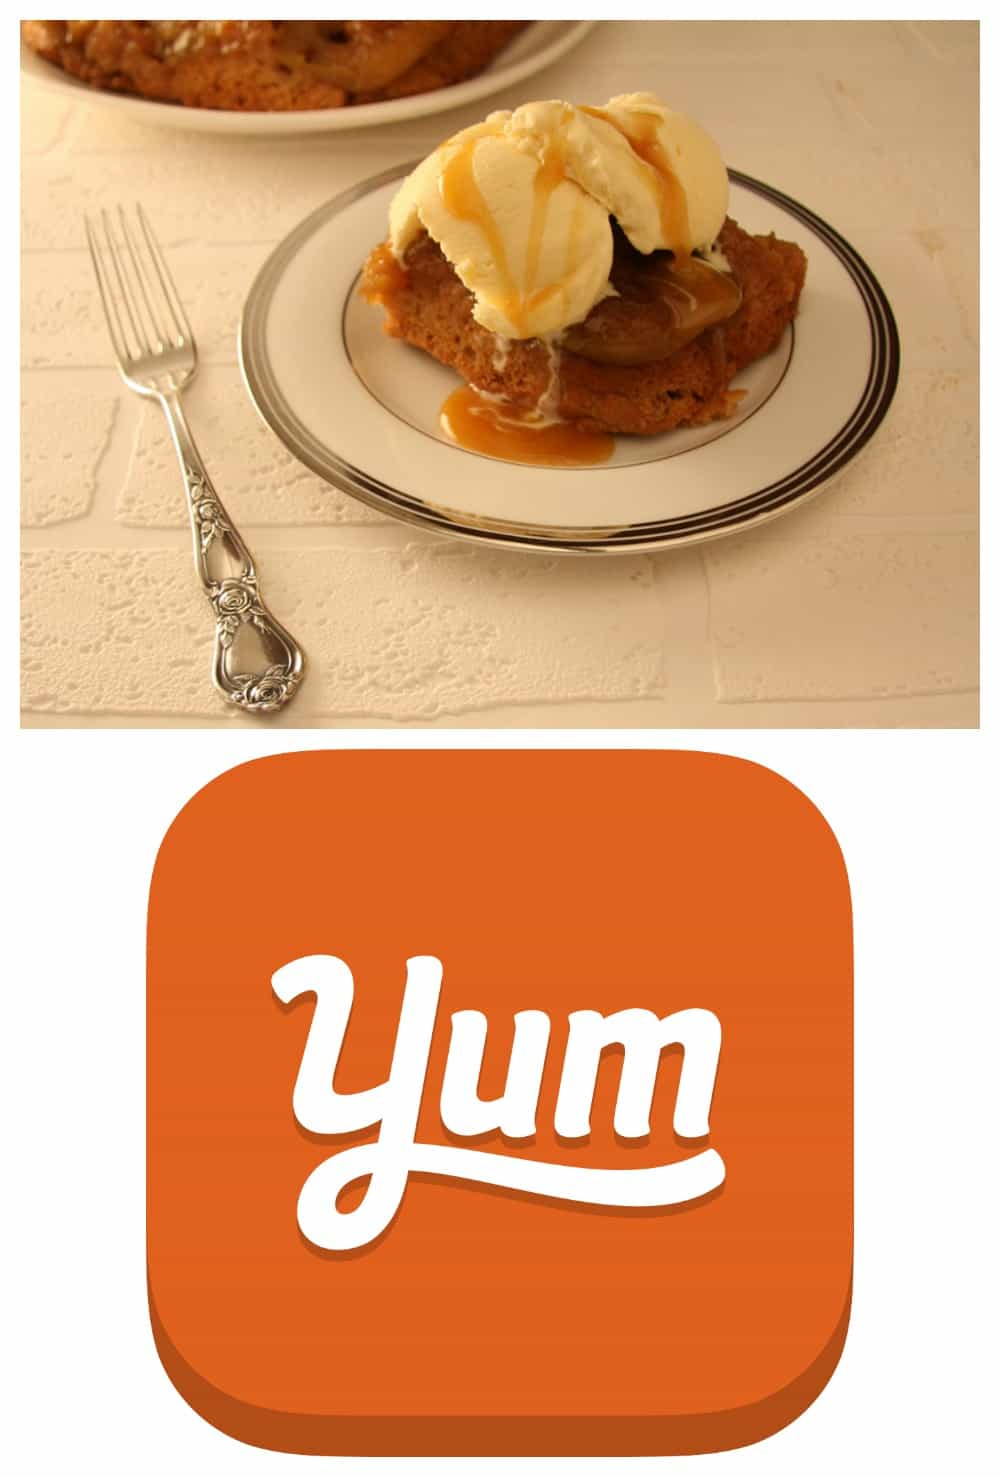 Yummly | A Recipe Community | Just Click that Yum Button!